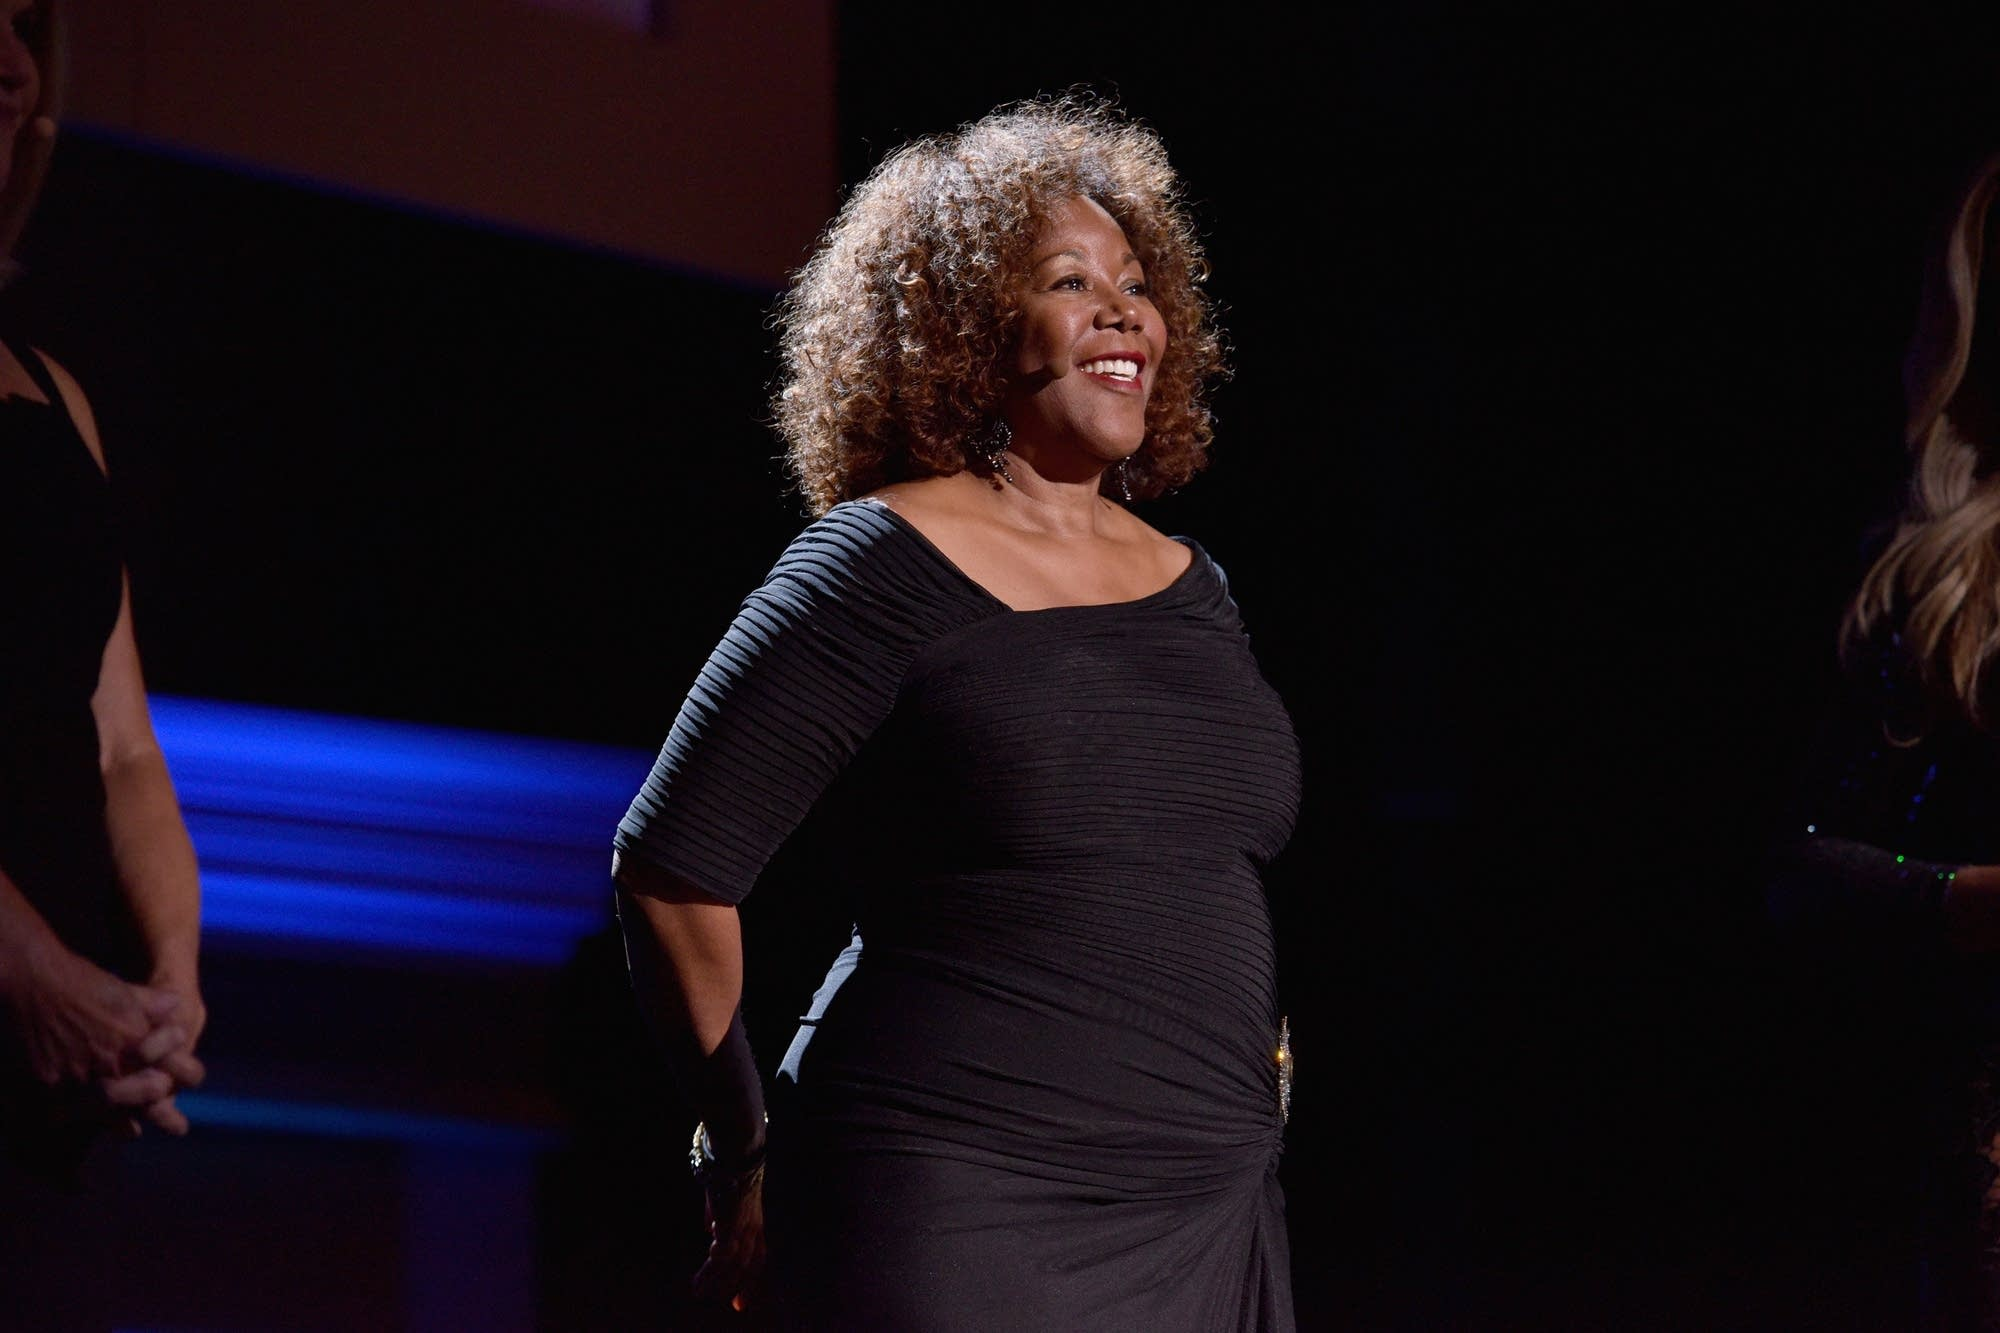 Ruby Bridges speaks onstage at Glamour's 2017 Women of The Year Awards.